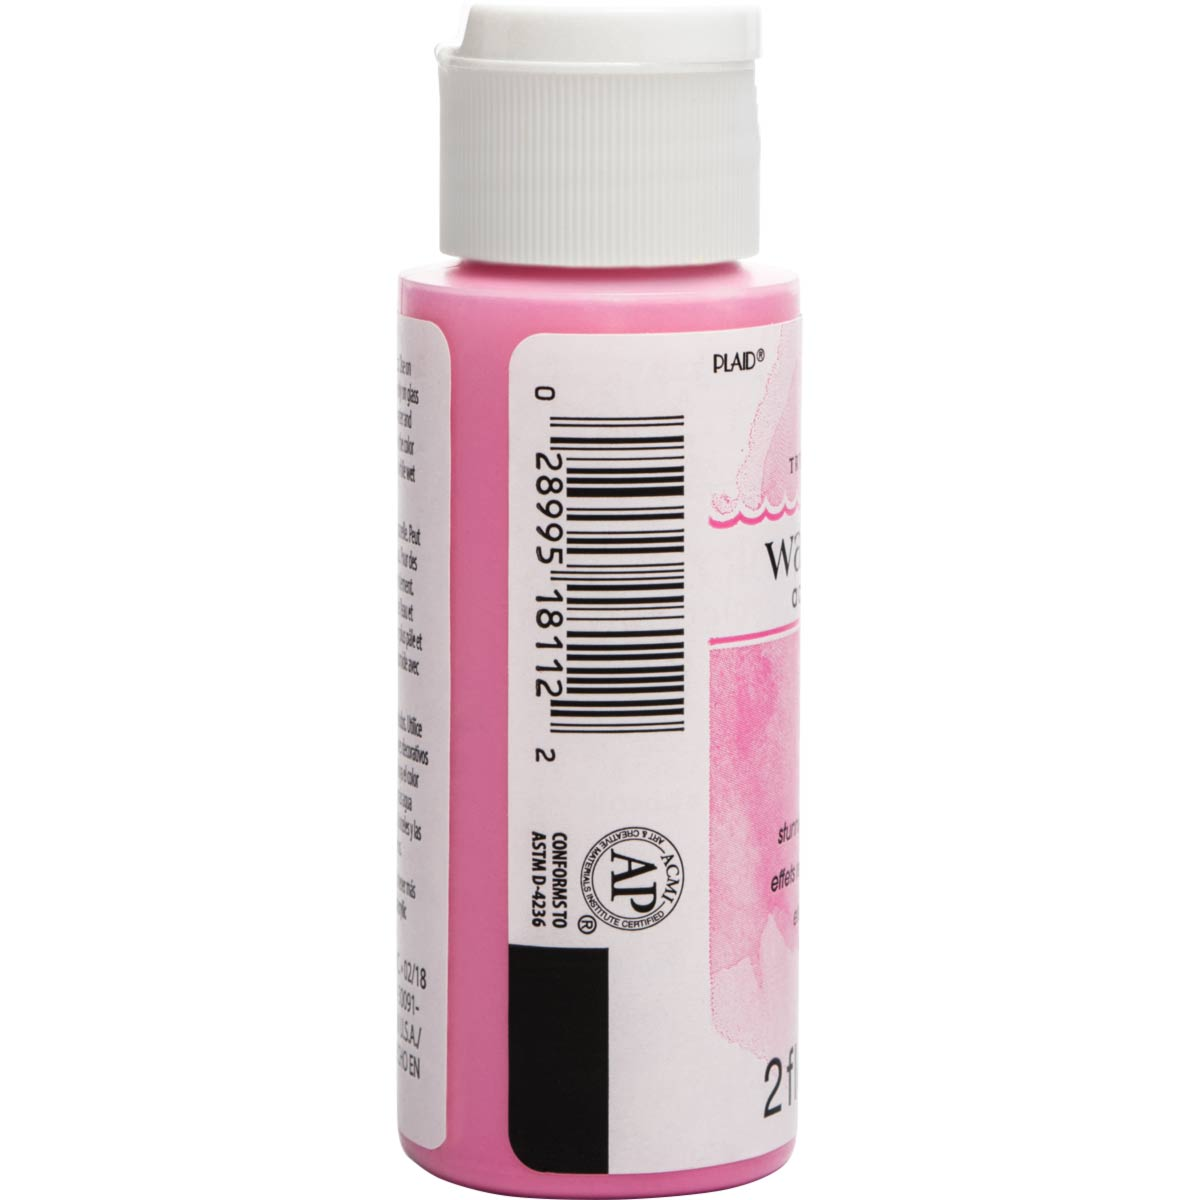 FolkArt ® Watercolor Acrylic Paint™ - Pink, 2 oz.